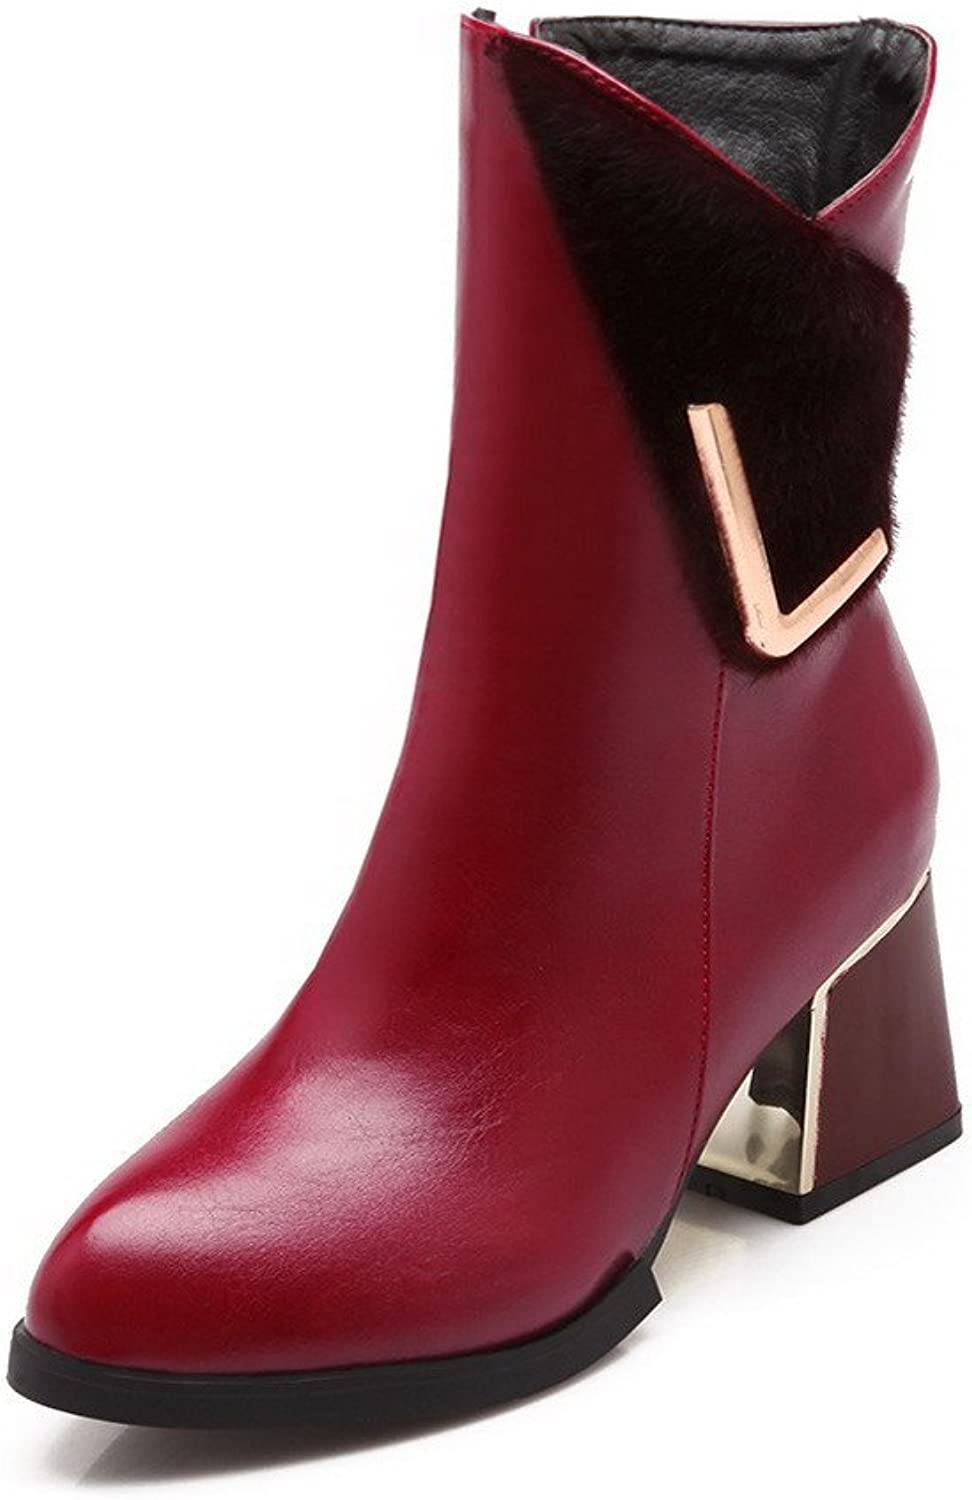 AllhqFashion Women's Blend Materials Pointed Closed Toe Kitten-Heels Solid Boots